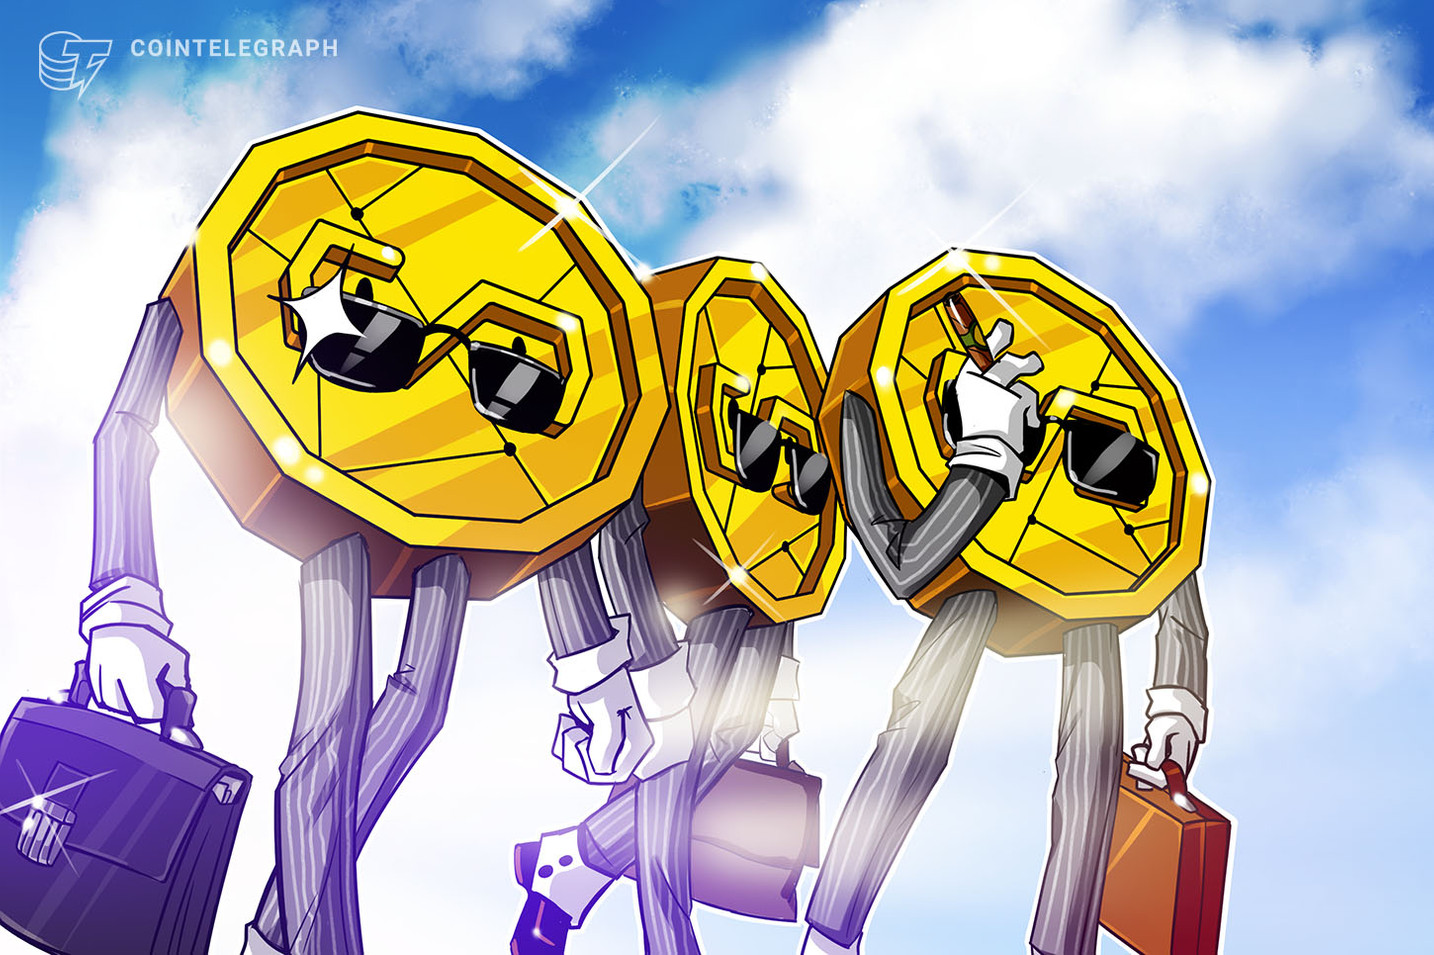 Reserve Rights (RSR) gains 300% as stablecoins gain regulatory approval